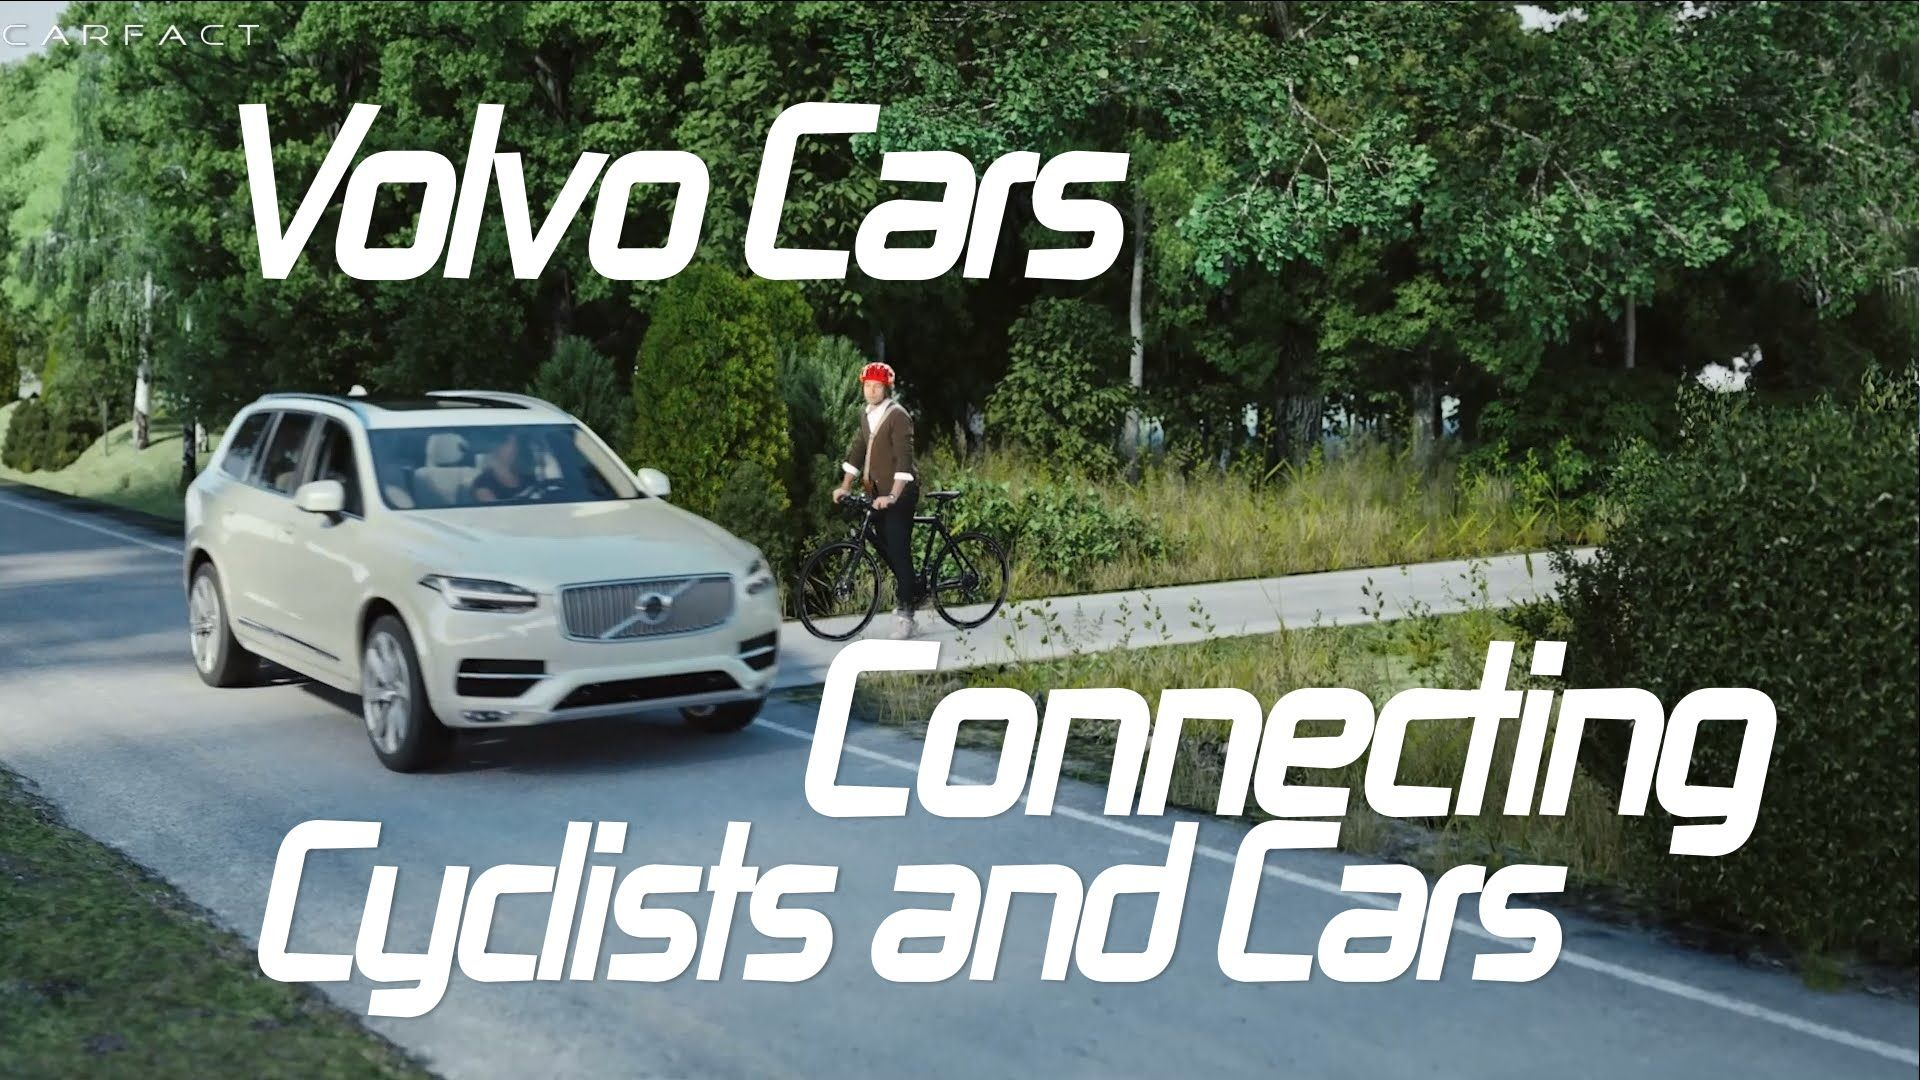 Volvo Cars Connecting Cyclists and Cars (With images